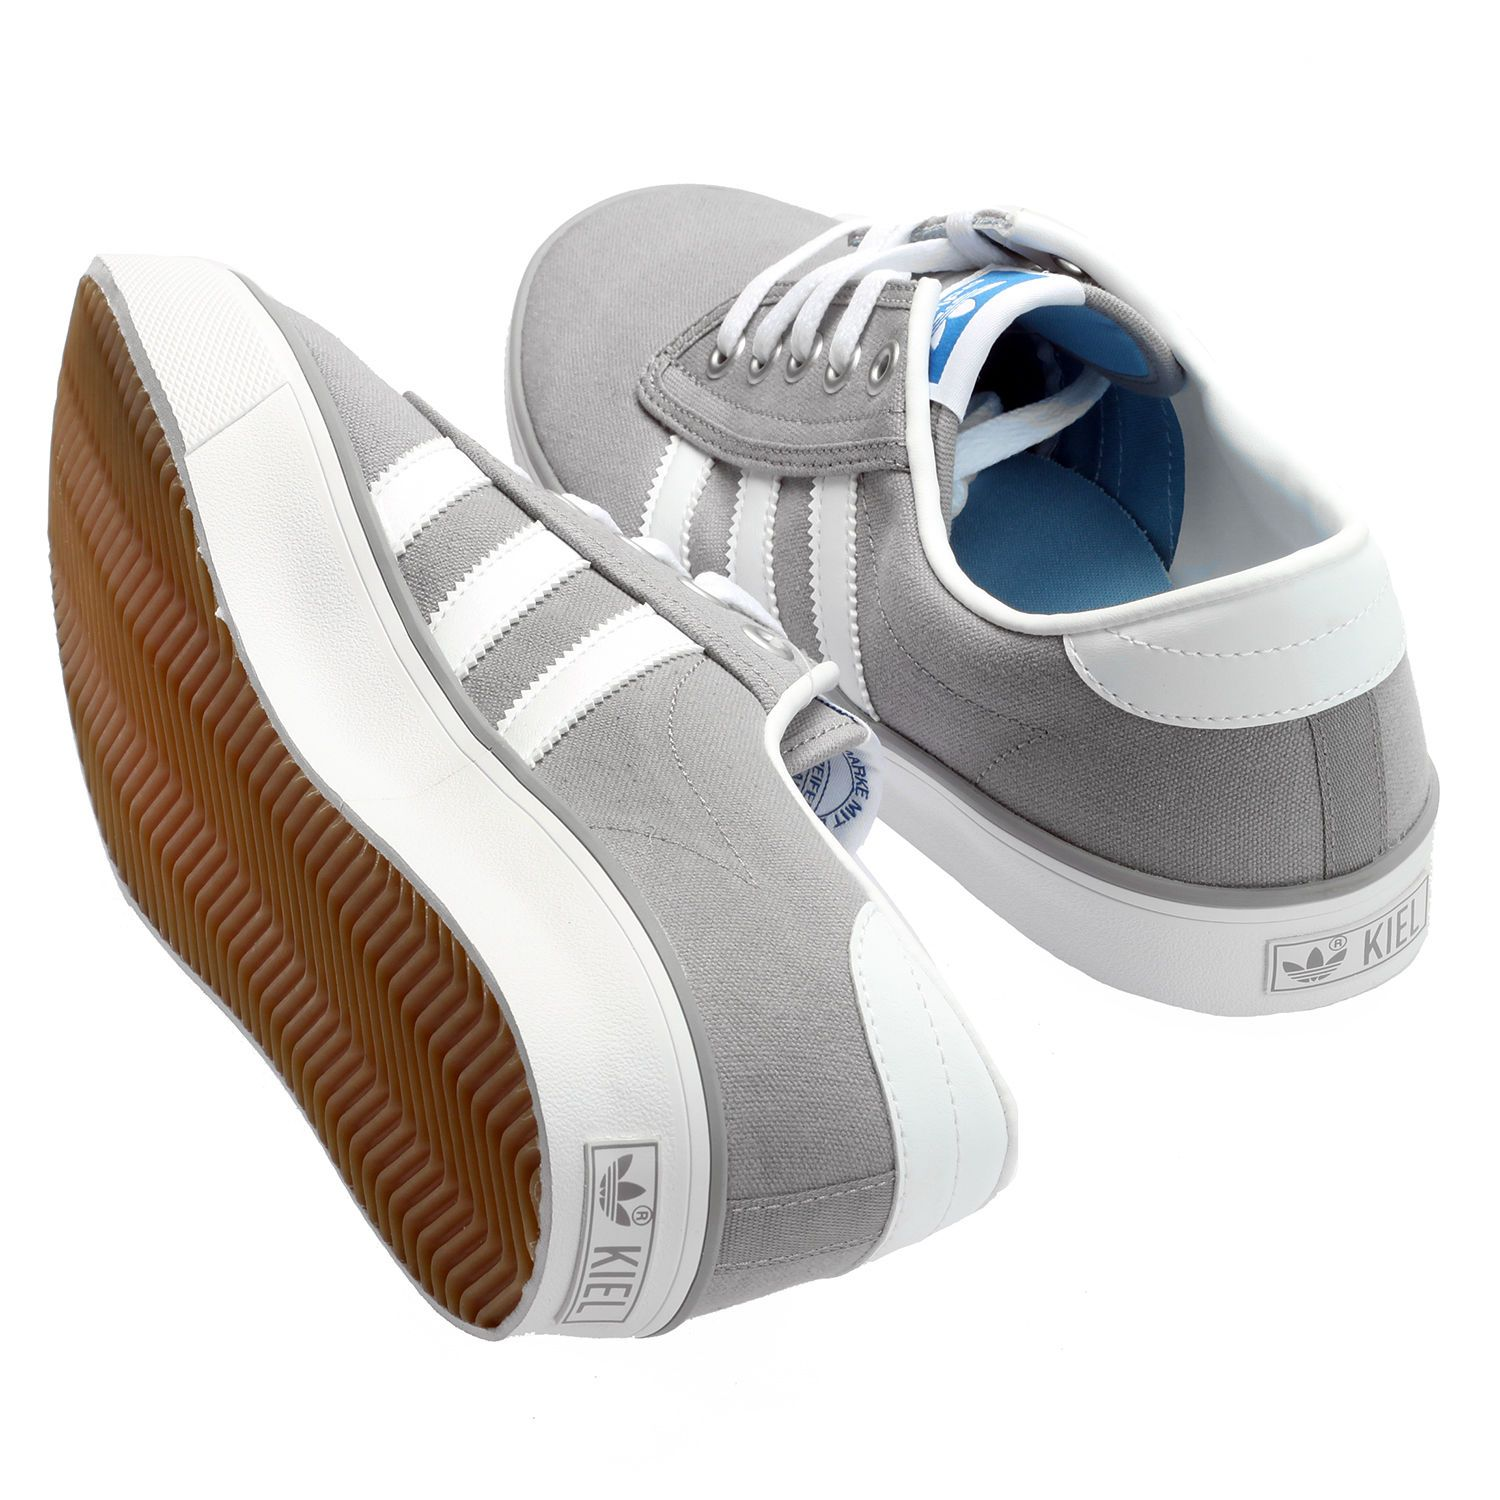 adidas kiel shoes grey